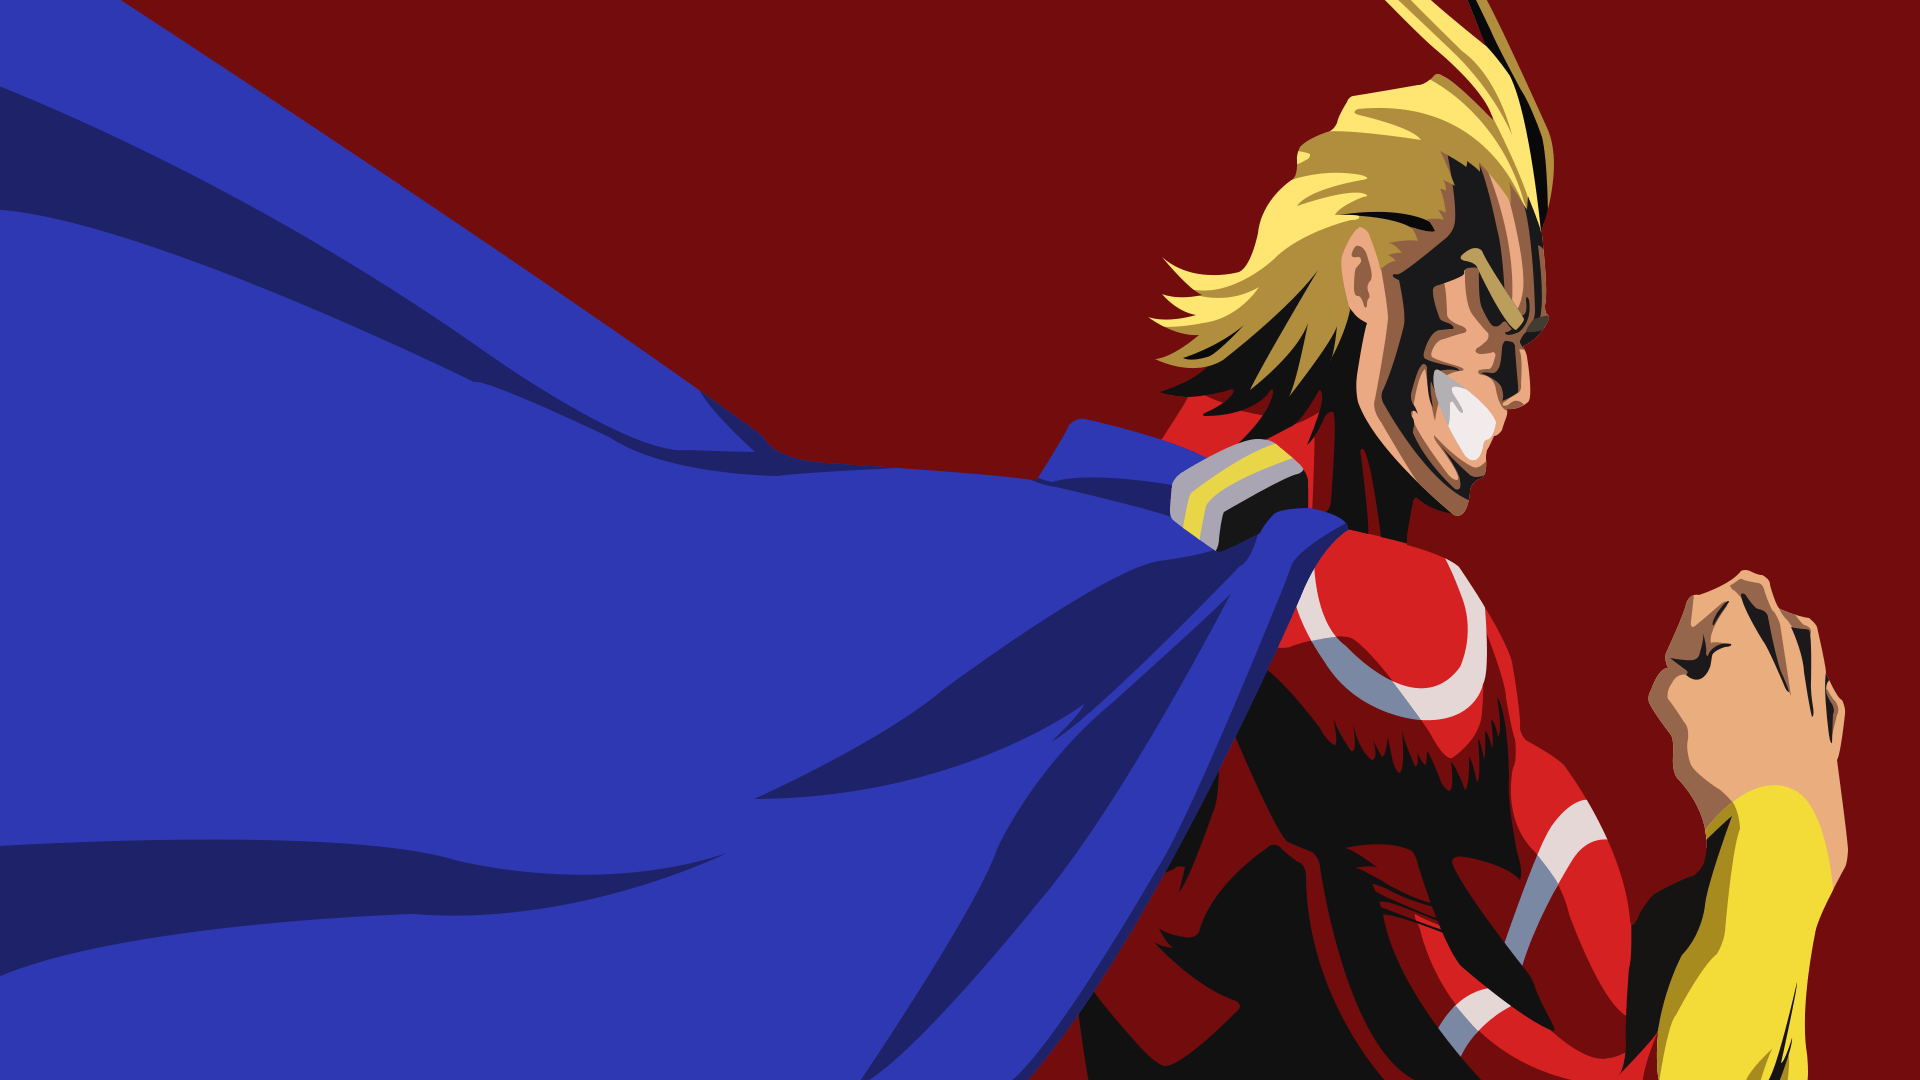 There is many background : All Might My Hero Academia Wallpapers - Top Free All Might ...